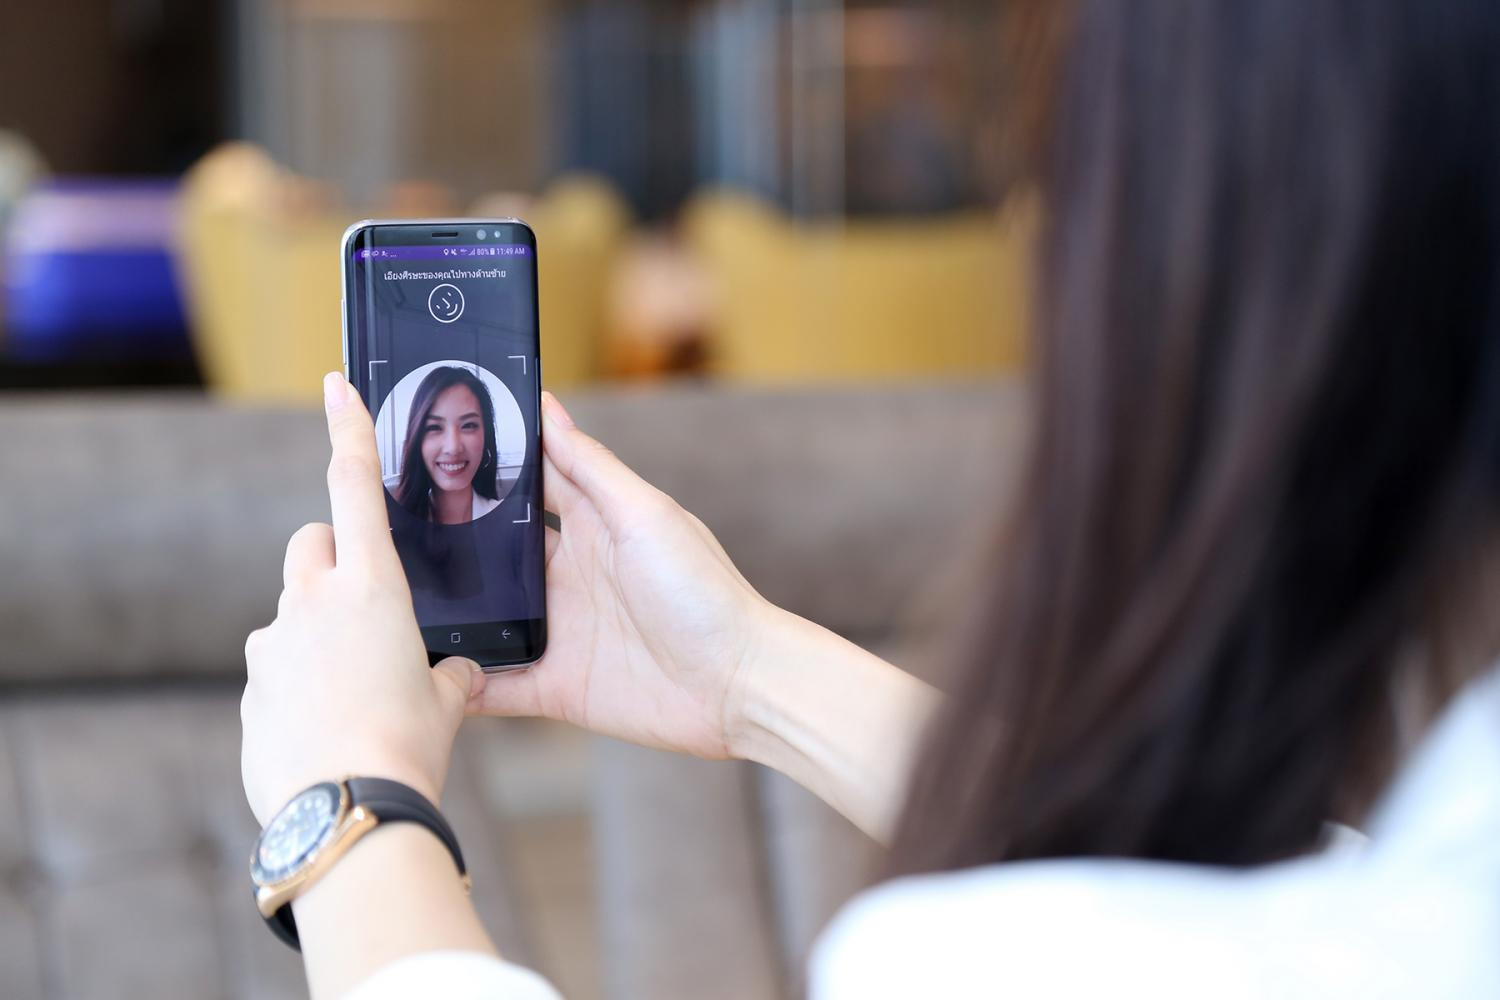 A mobile screen displays SCB's digital know-your-customer feature, allowing new bank accounts via facial recognition.